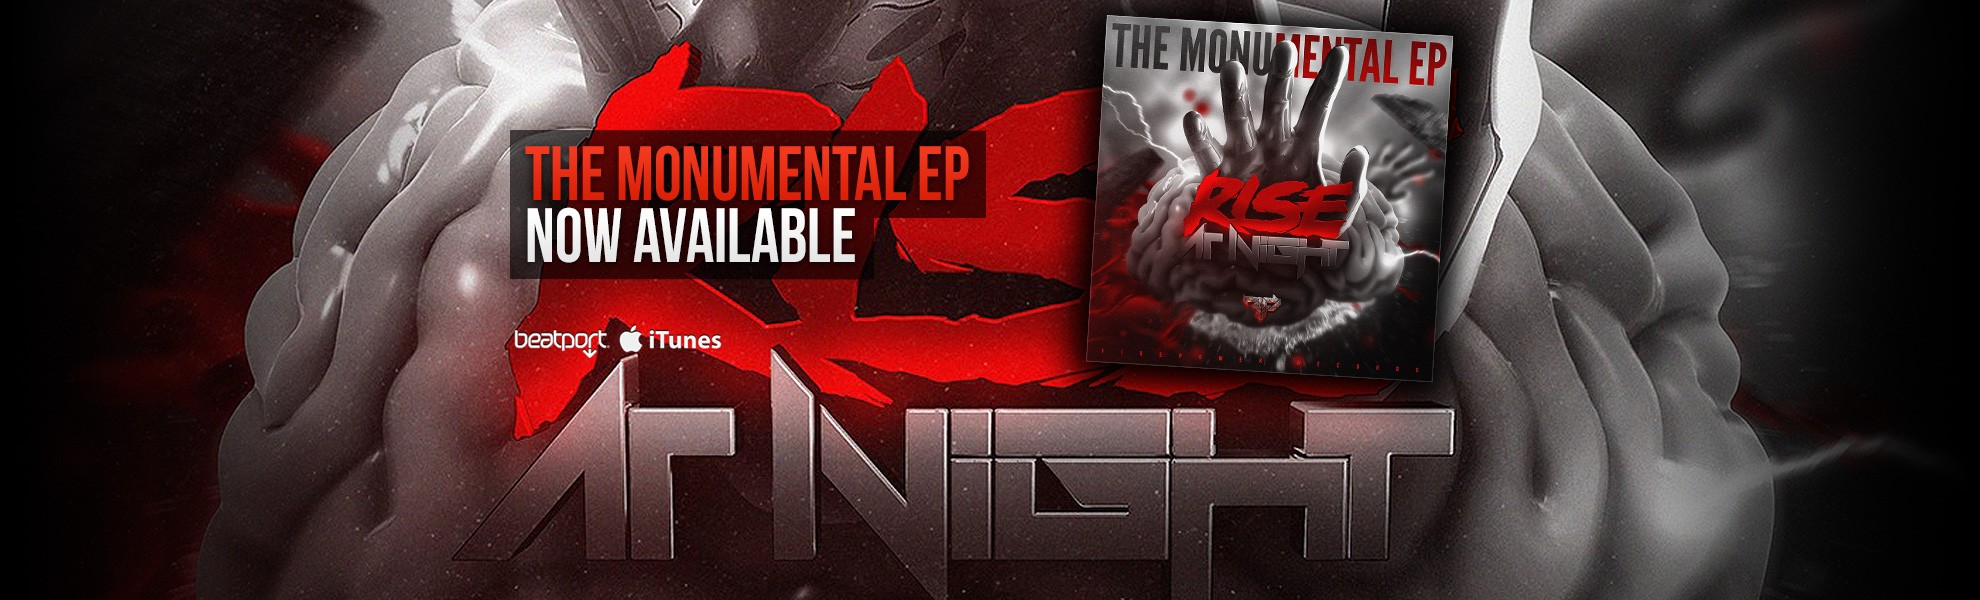 The Monumental EP